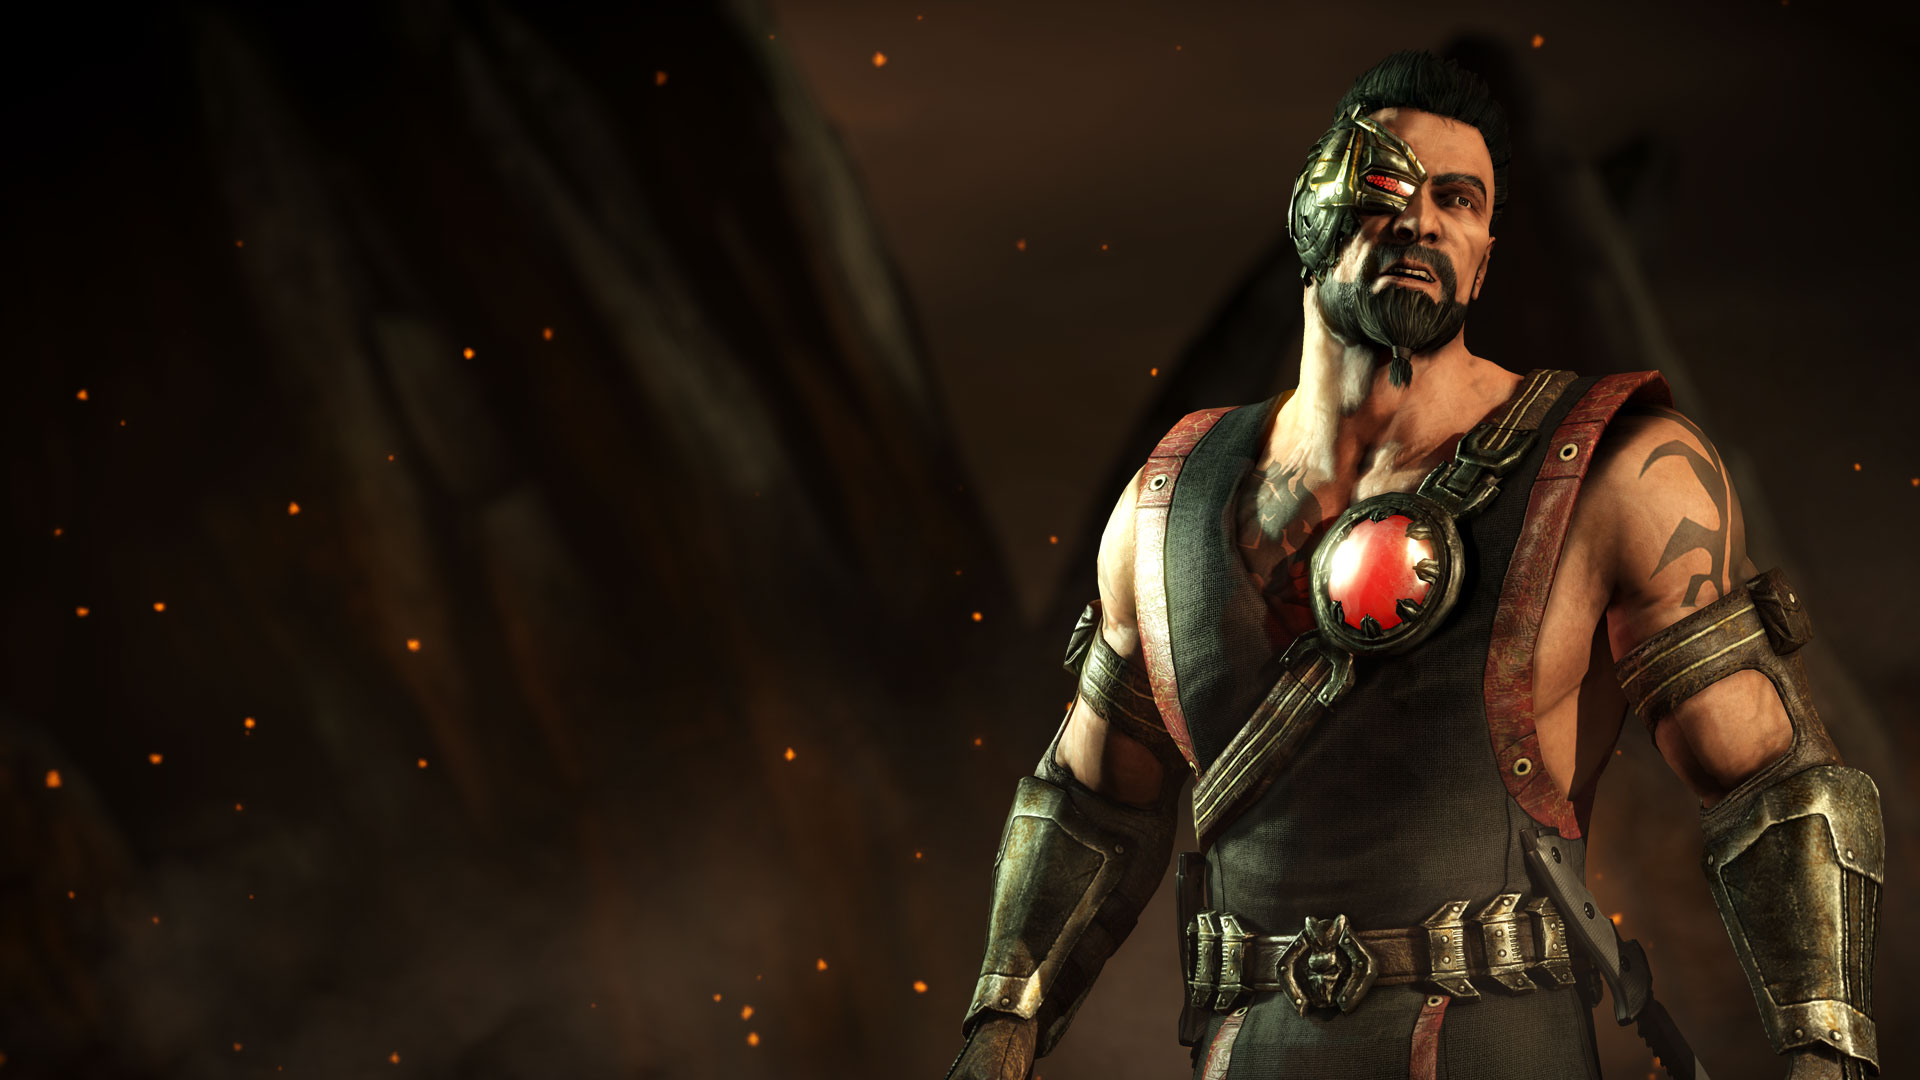 MKWarehouse Mortal Kombat X Wallpapers 1920x1080